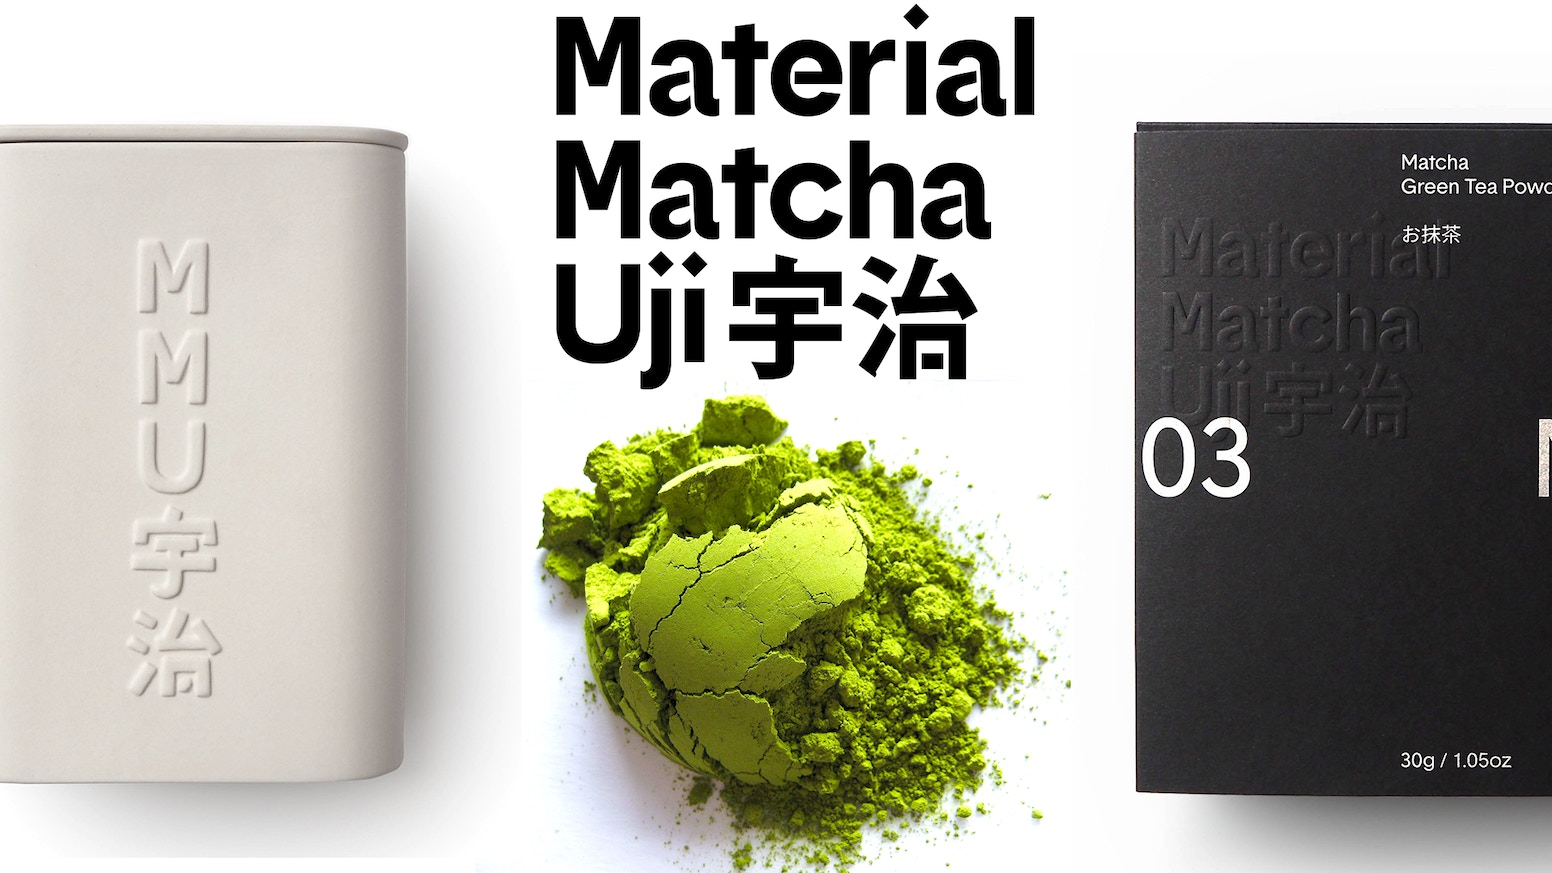 Two Frenchmen in Japan go on a quest to create Craft Matcha, using ancient traditional techniques and working with local tea farmers!